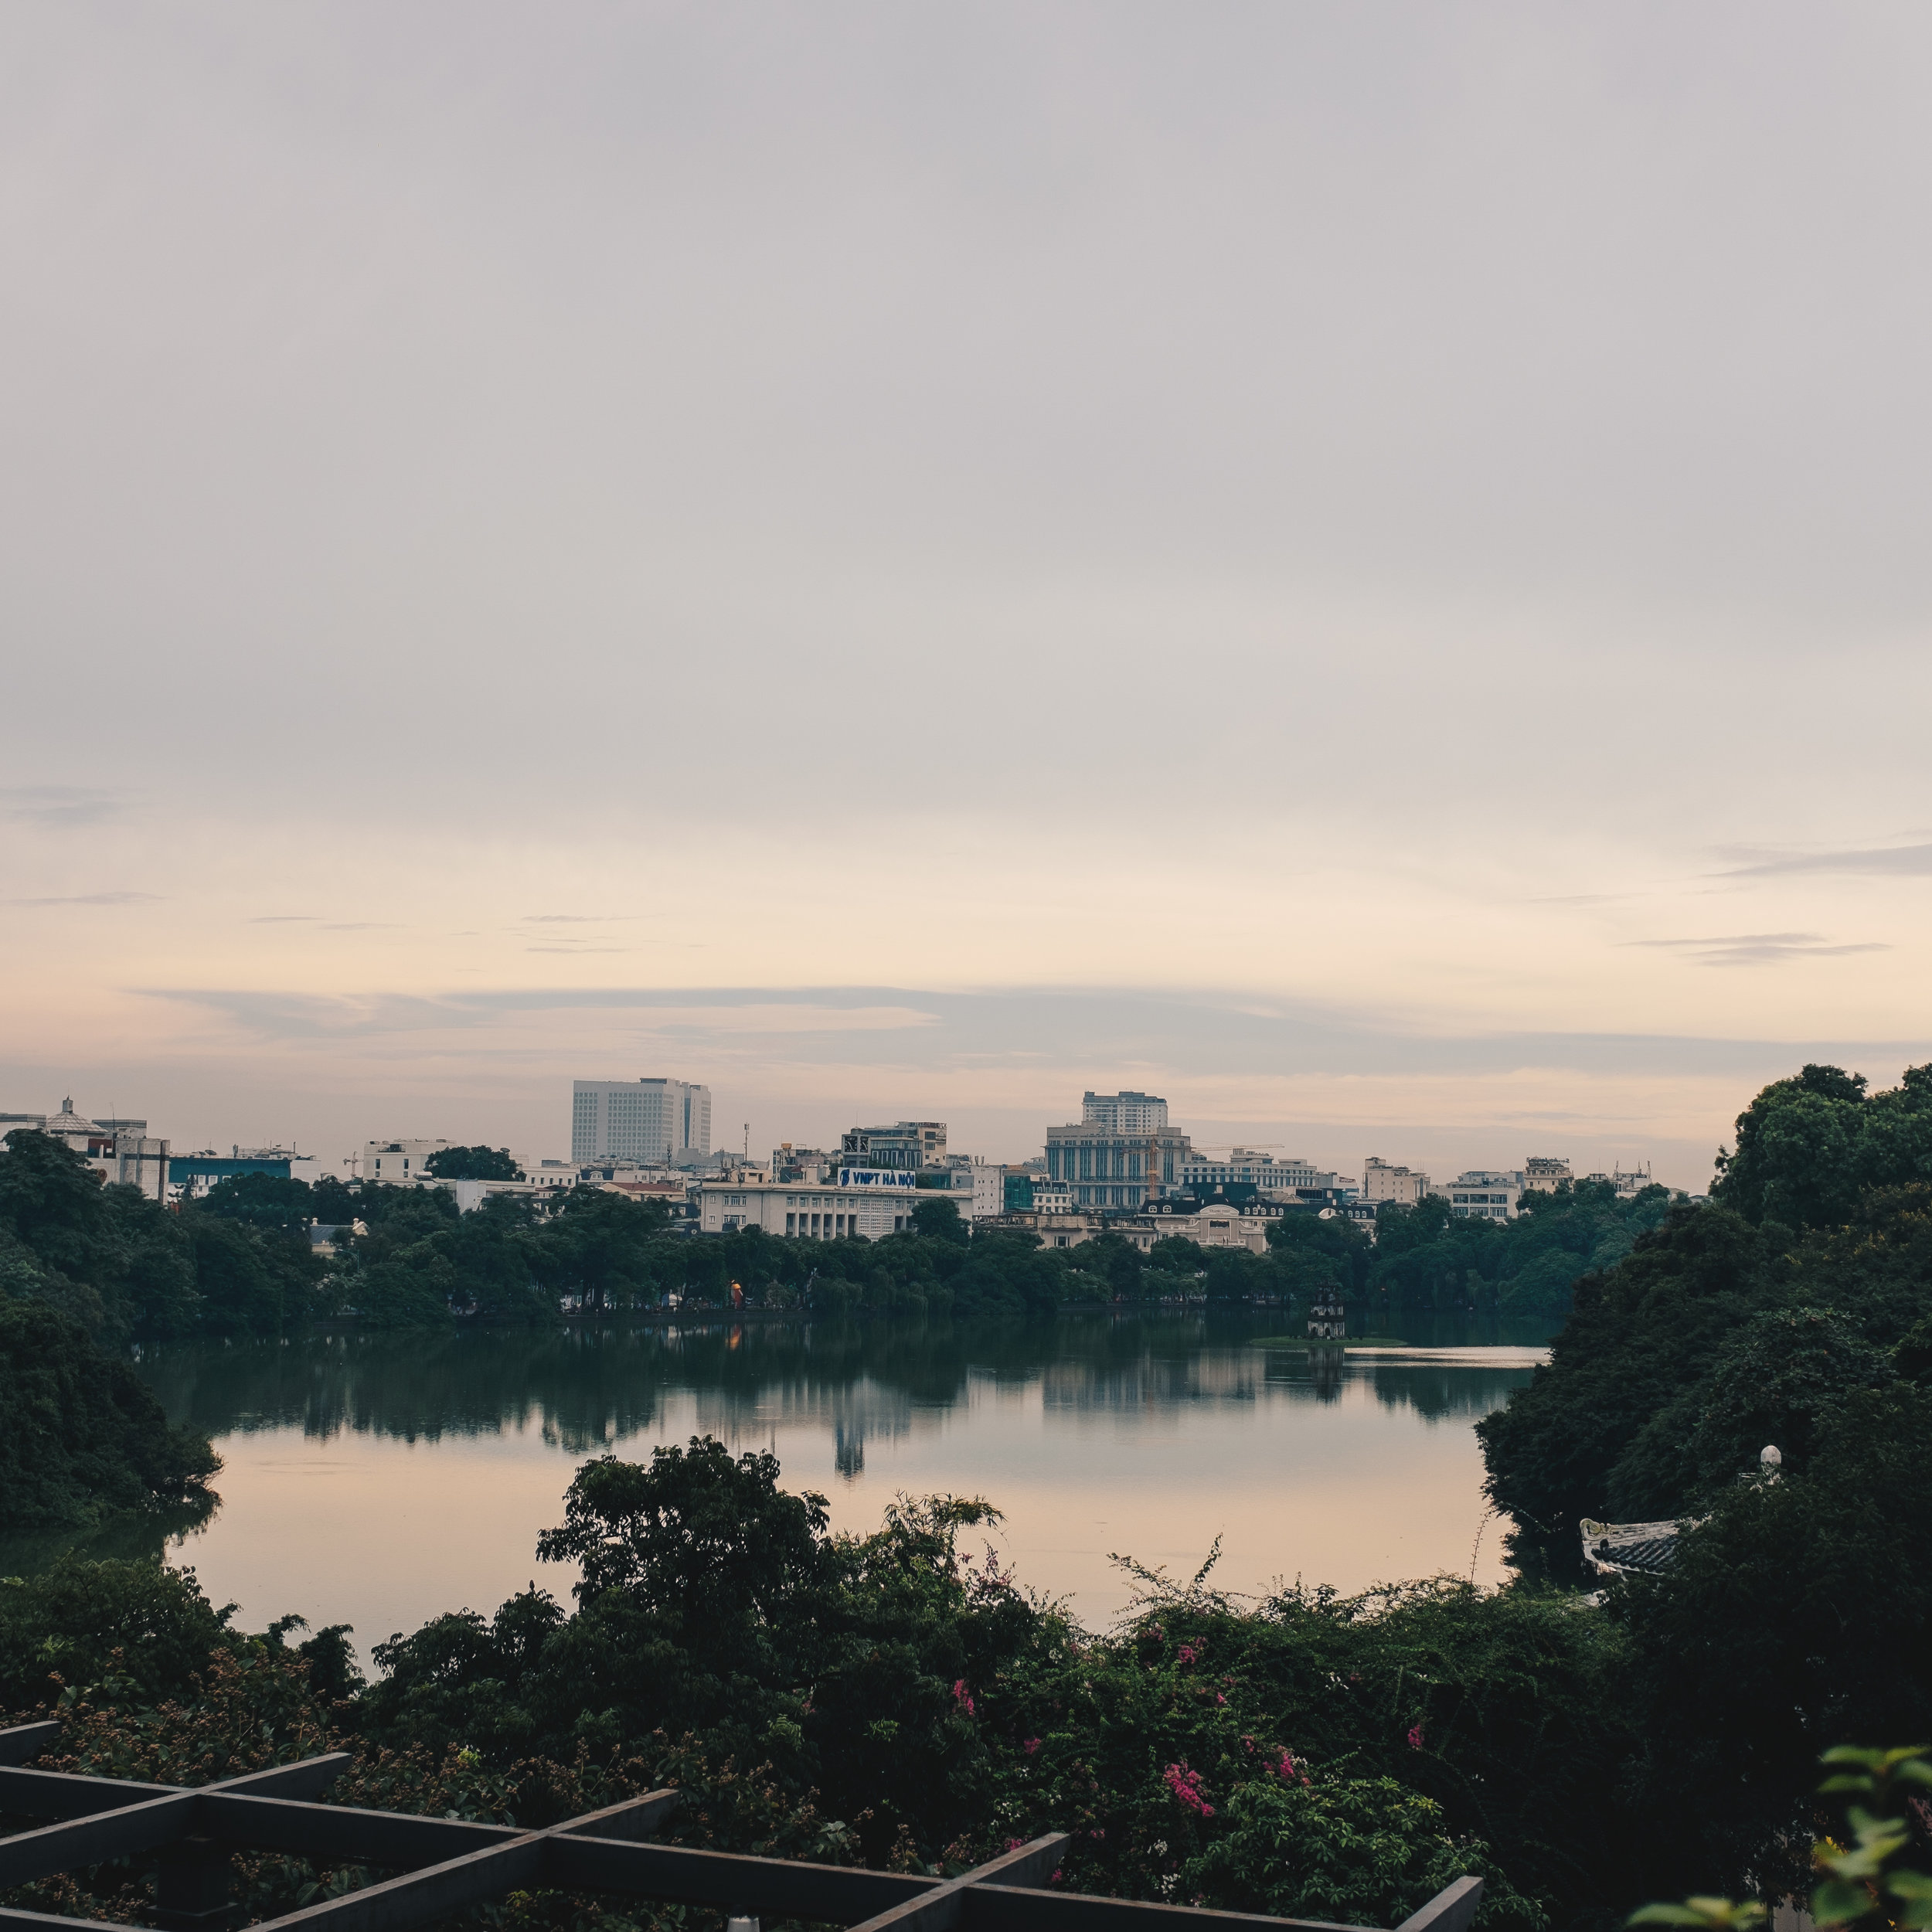 Sipping Vietnamese drip coffee whilst overlooking the view of Hoan Kiem Lake